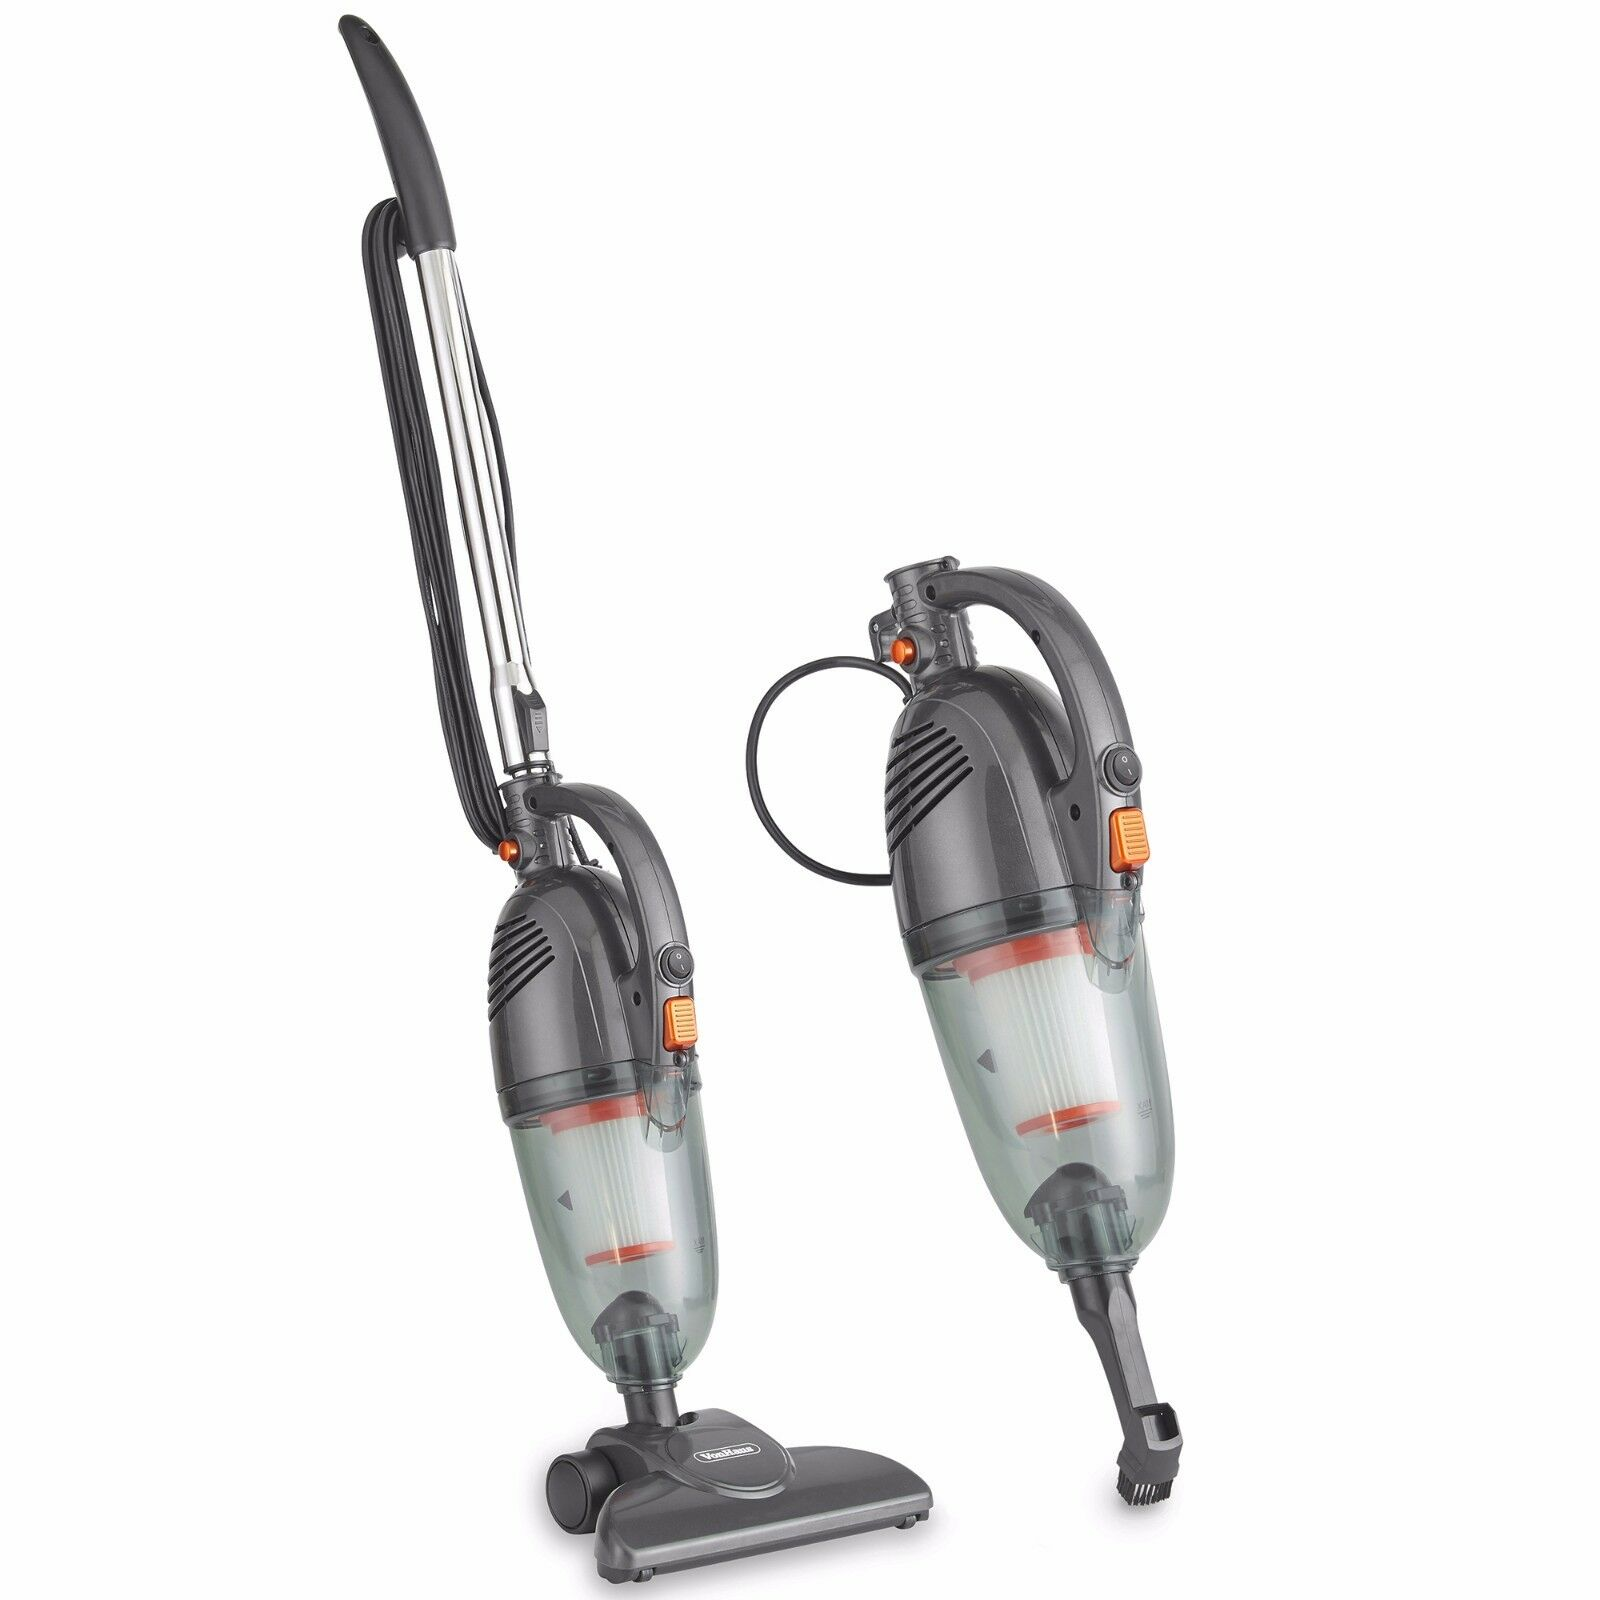 VonHaus 2 in 1 Corded Stick Handheld Vacuum Cleaner Bagless